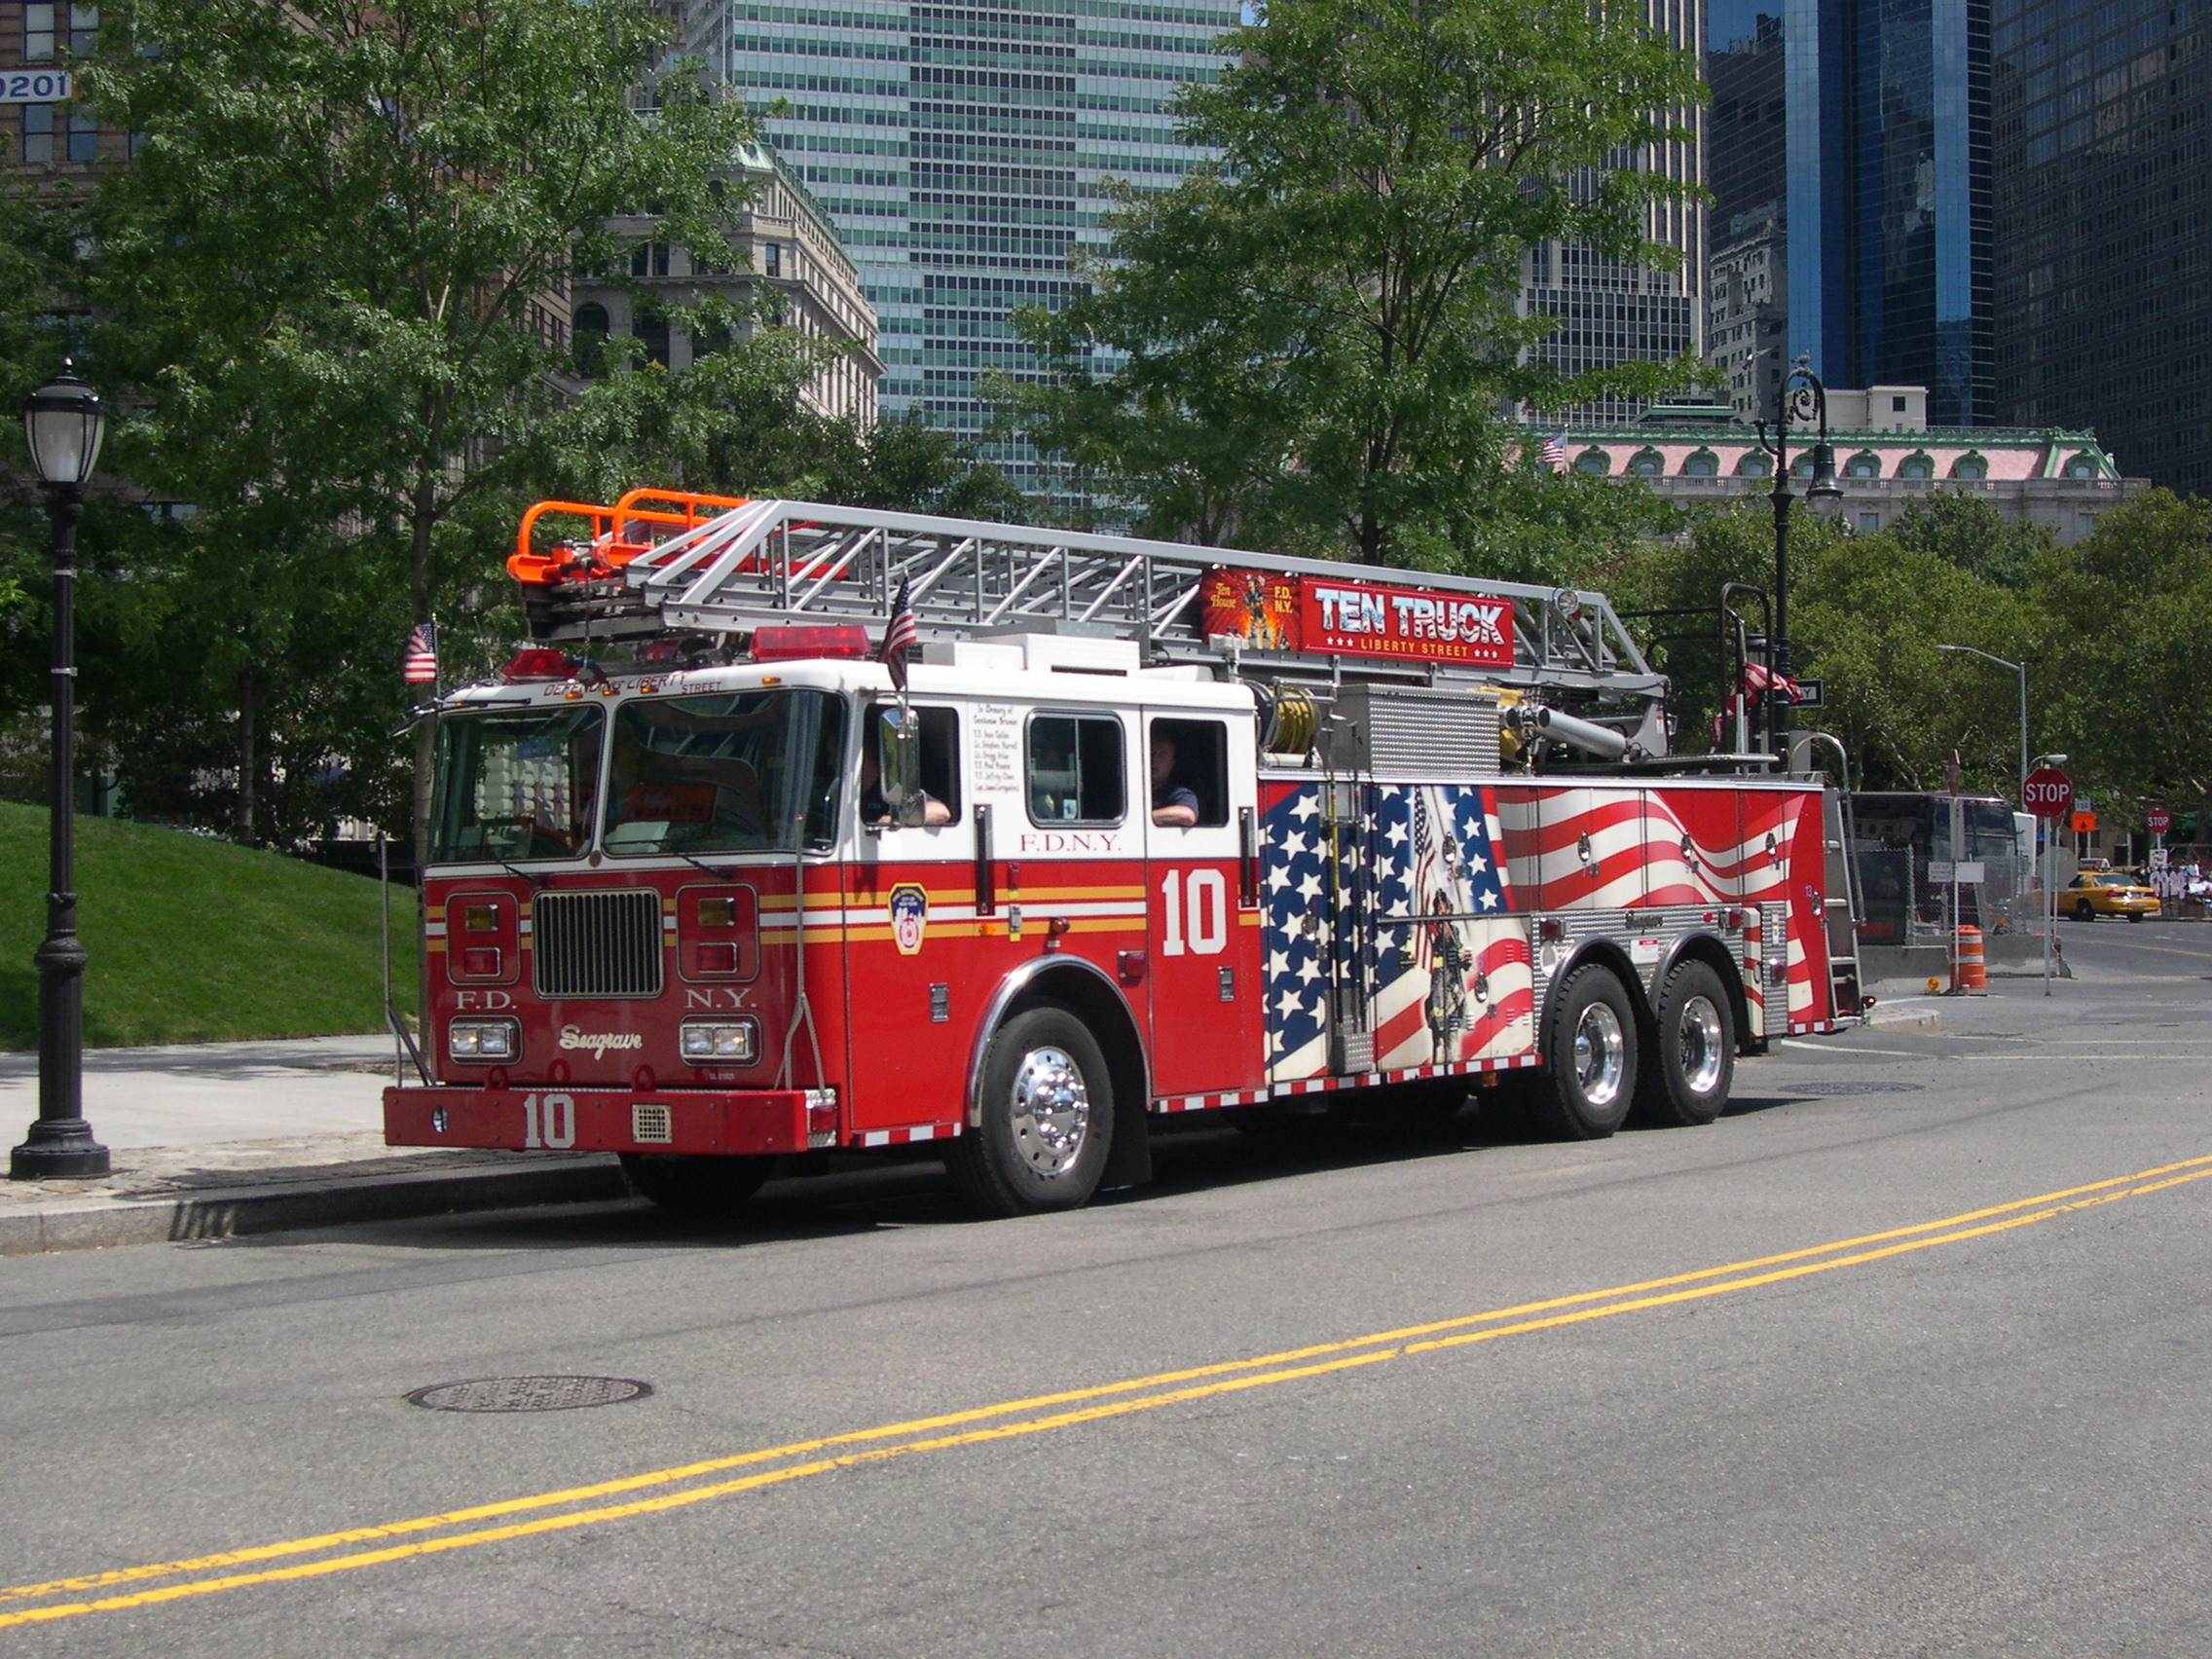 2272x1704 ... Wallpapers · High Resolution Graceful Fire Truck Background Images by  Terry Risley 1485102